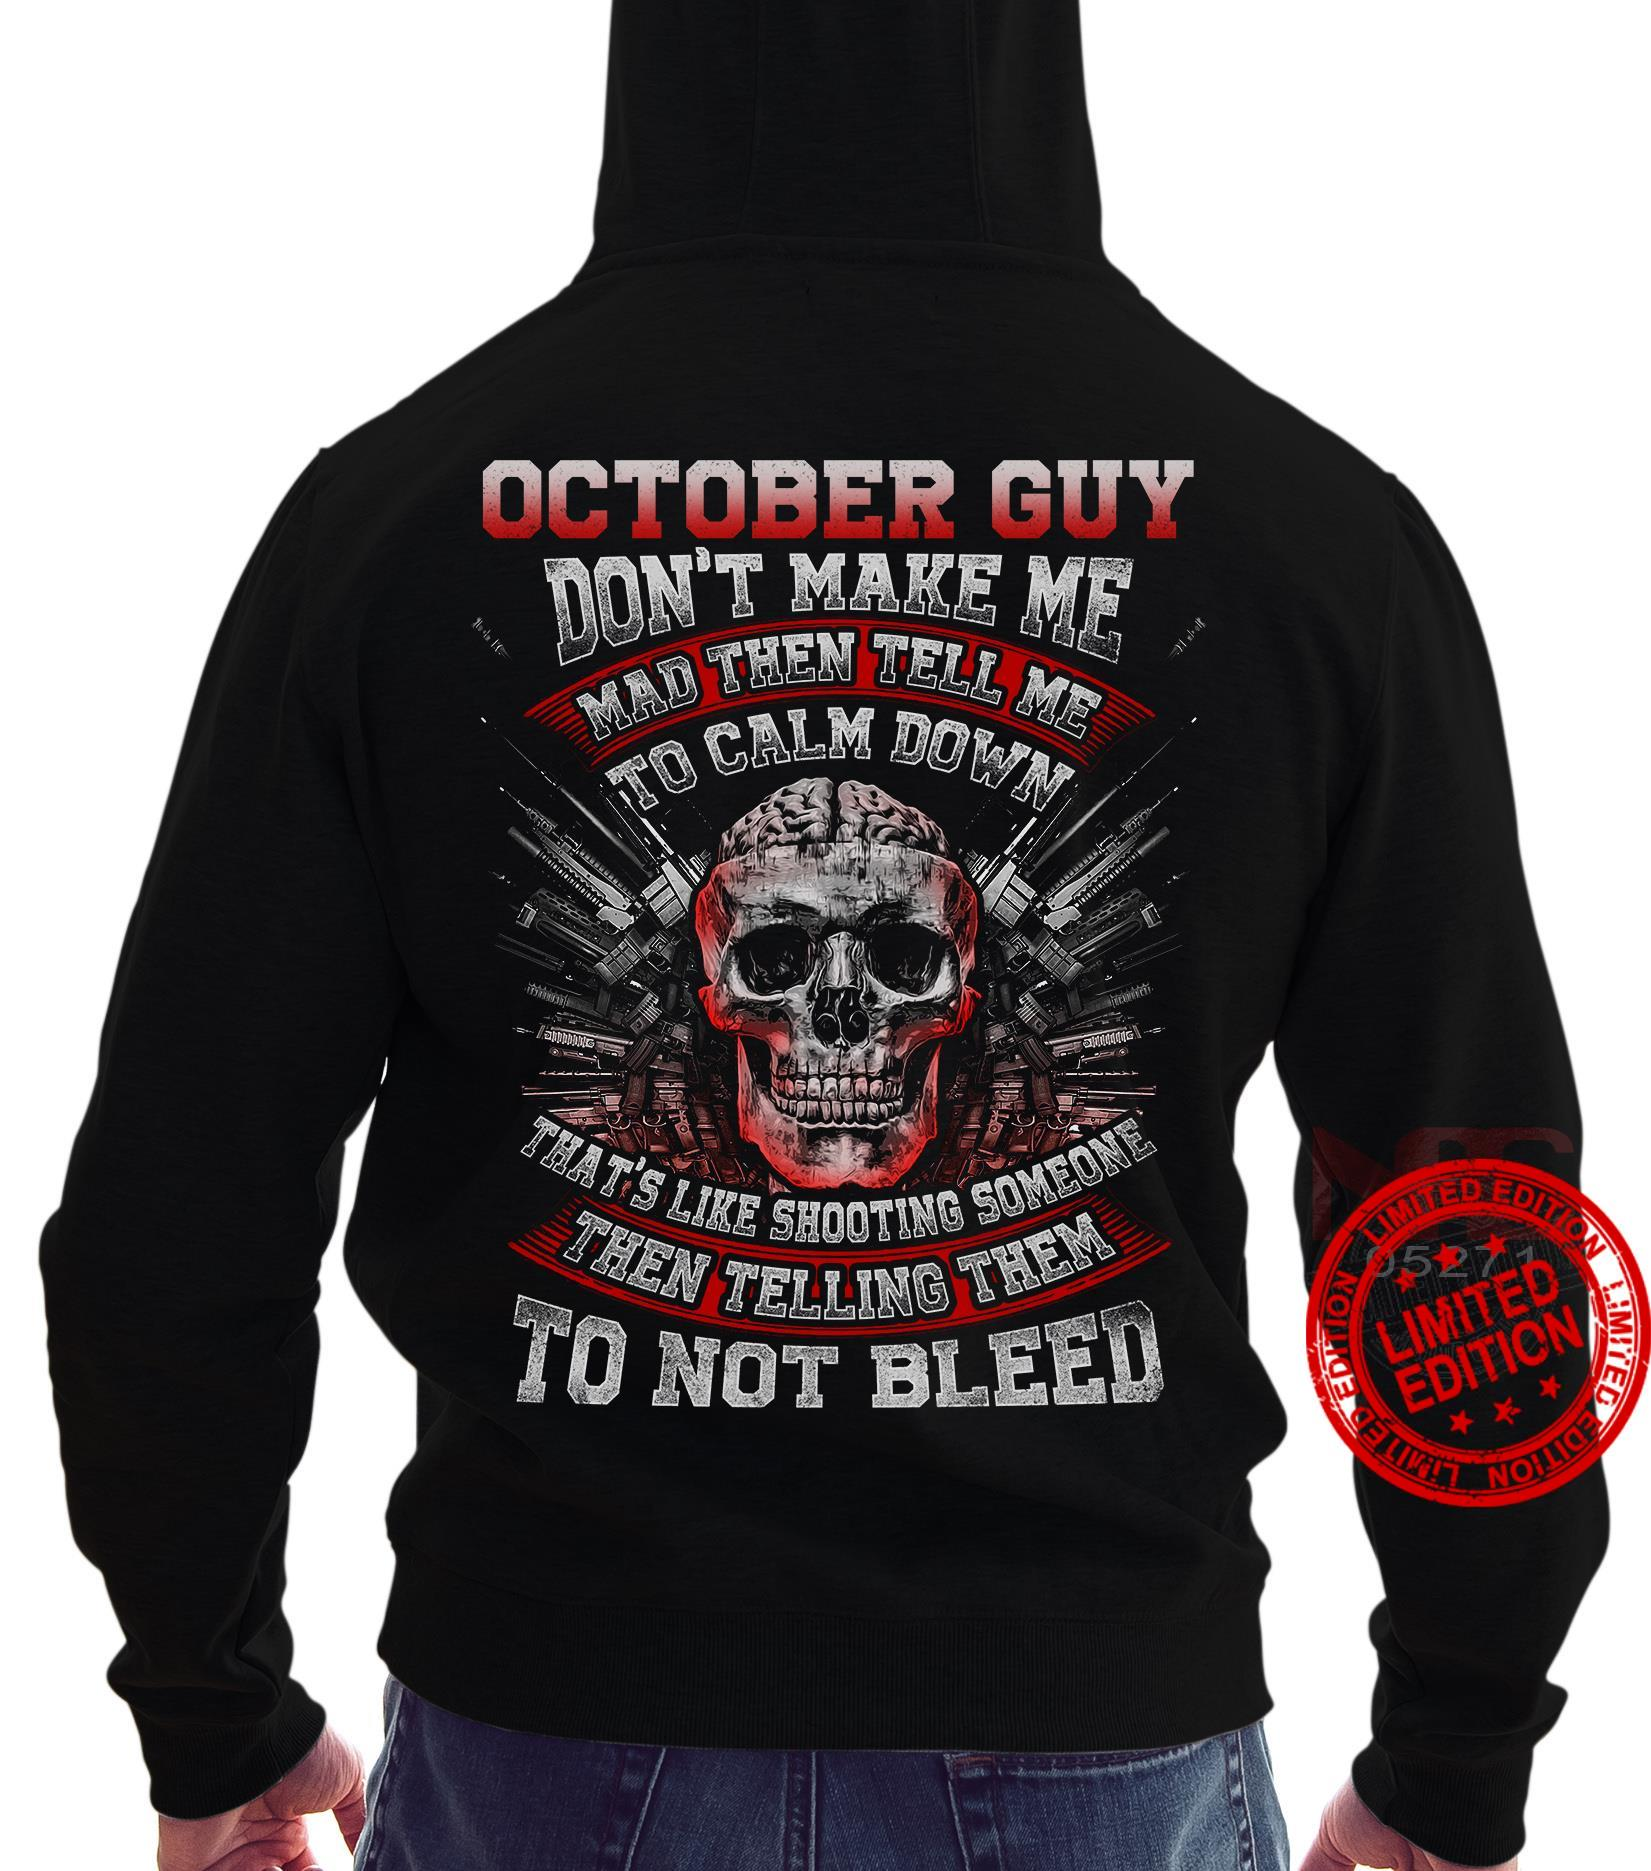 October Guy Don't Make Me Mad Then Tell Me To Calm Down Shirt